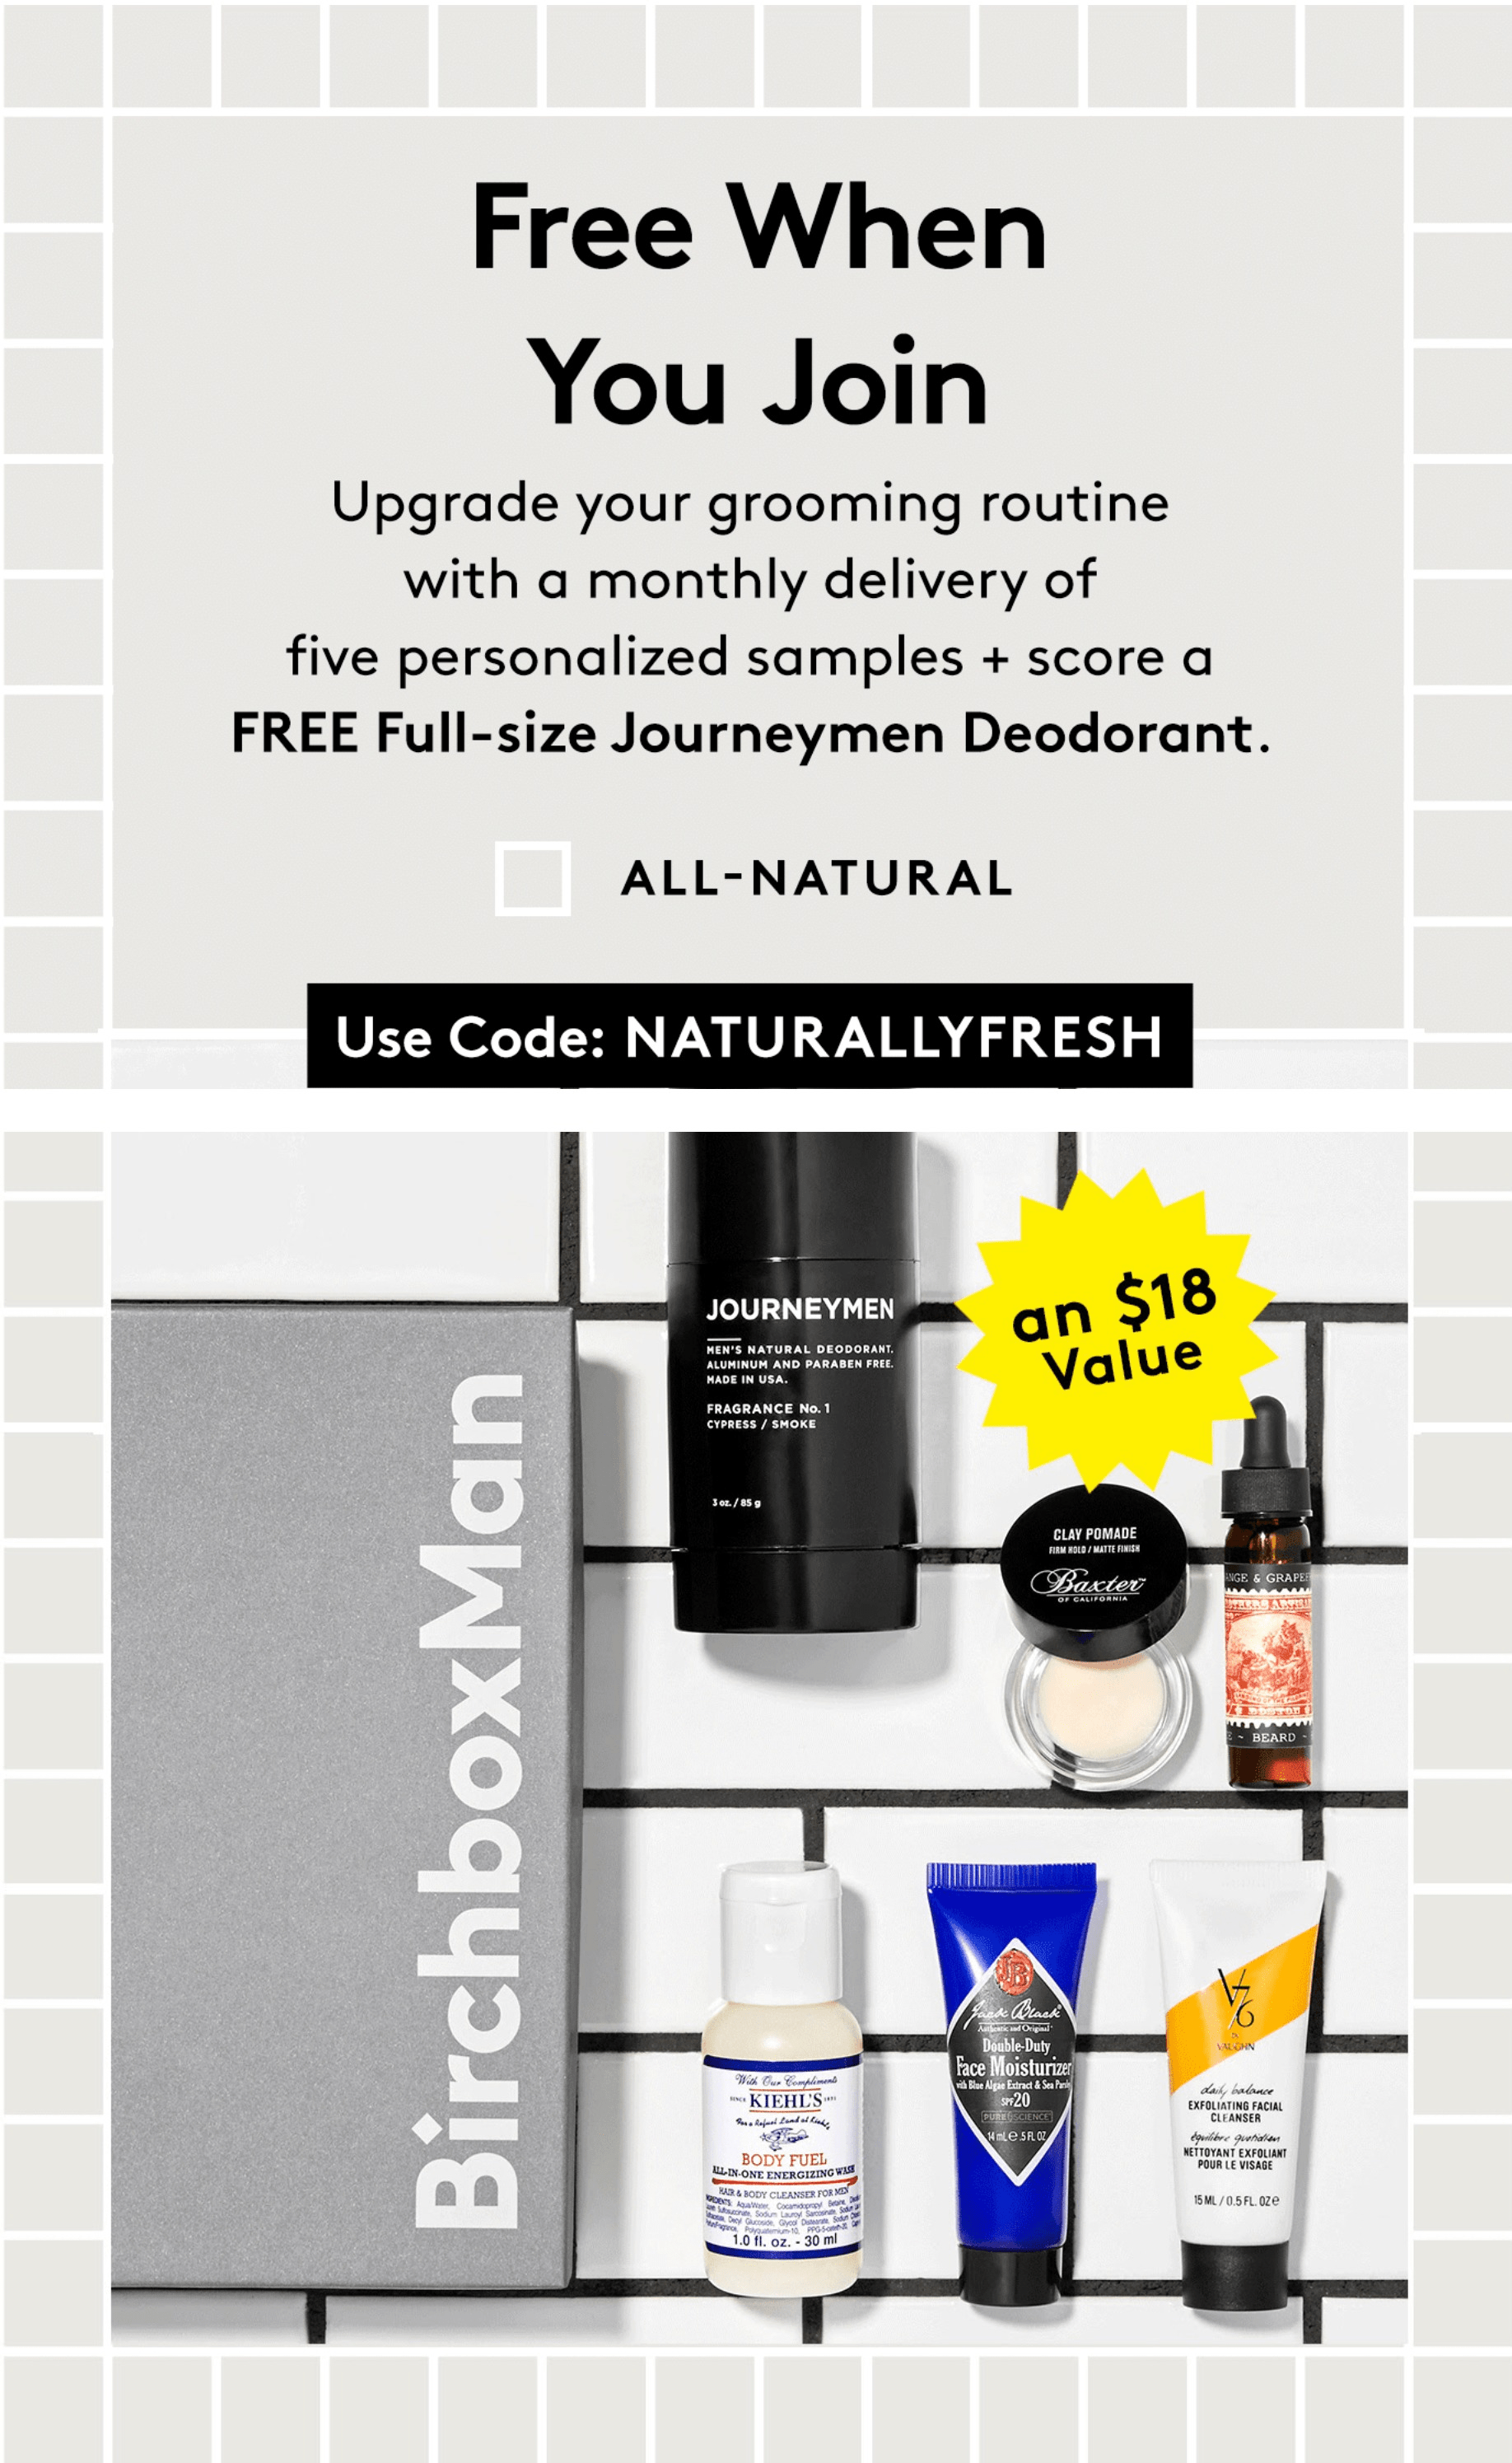 Birchbox Man Coupon: Get FREE Full-Size Journeymen Deodorant With Your First Box!